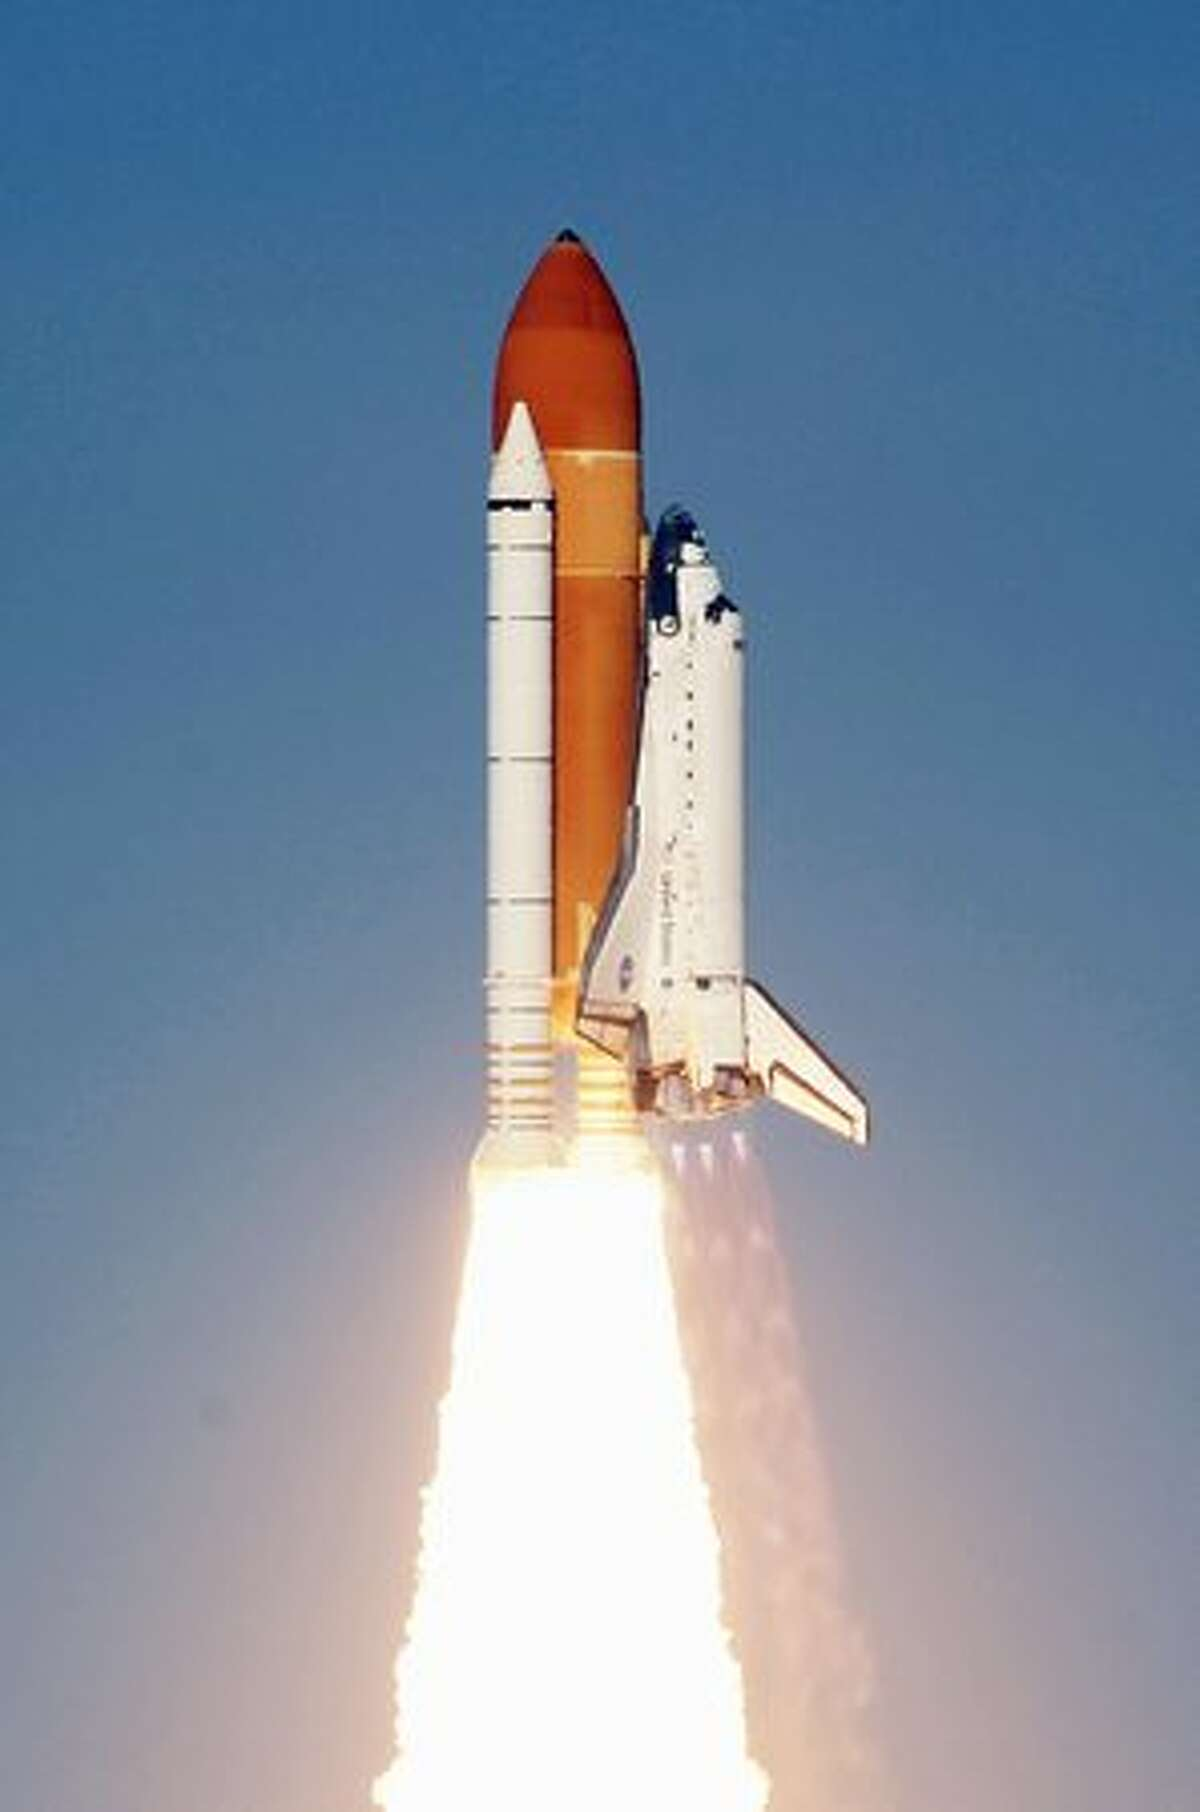 The space shuttle Discovery lifts off Feb. 24 from Kennedy Space Center in Florida on a mission to the International Space Station. It is be the 39th and final flight for Discovery.